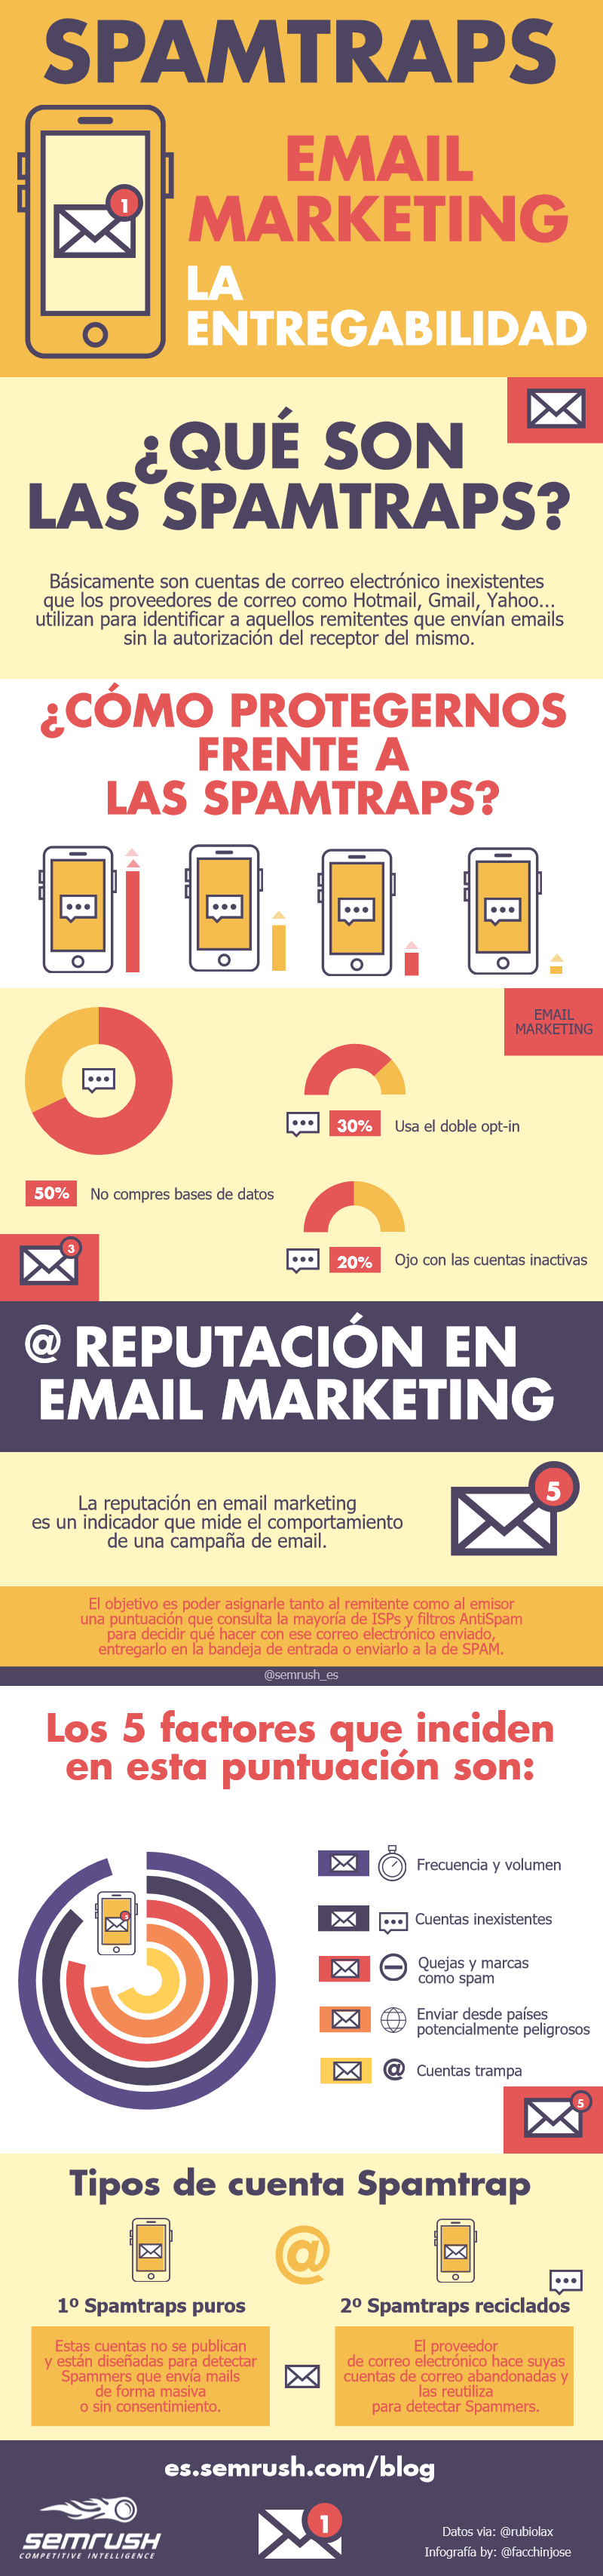 Spamtraps y la entregabilidad en email marketing